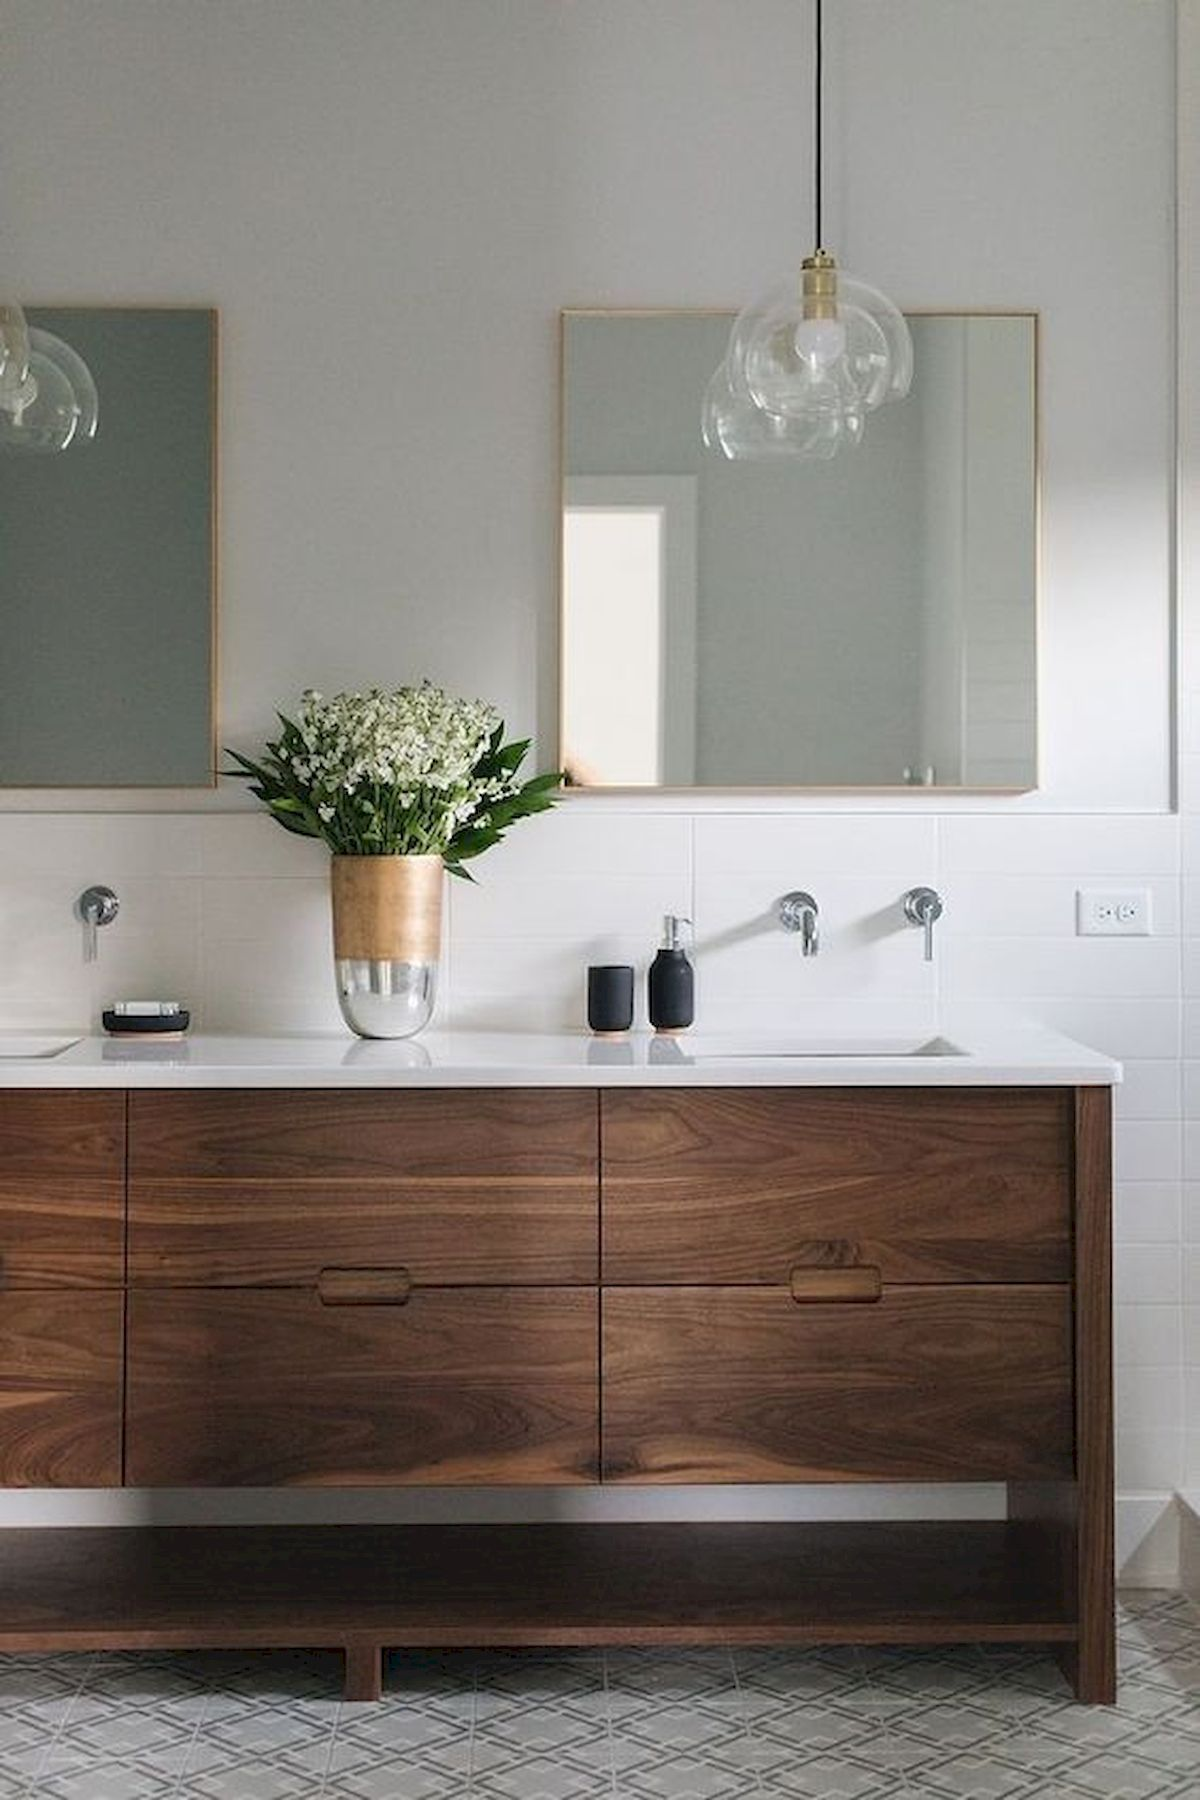 Tips And Trick Choosing Vanity For The Modern Bathroom For Look Cleaning Lets Read In Her Wood Bathroom Vanity Bathroom Vanity Decor Beautiful Bathroom Vanity [ 1800 x 1200 Pixel ]